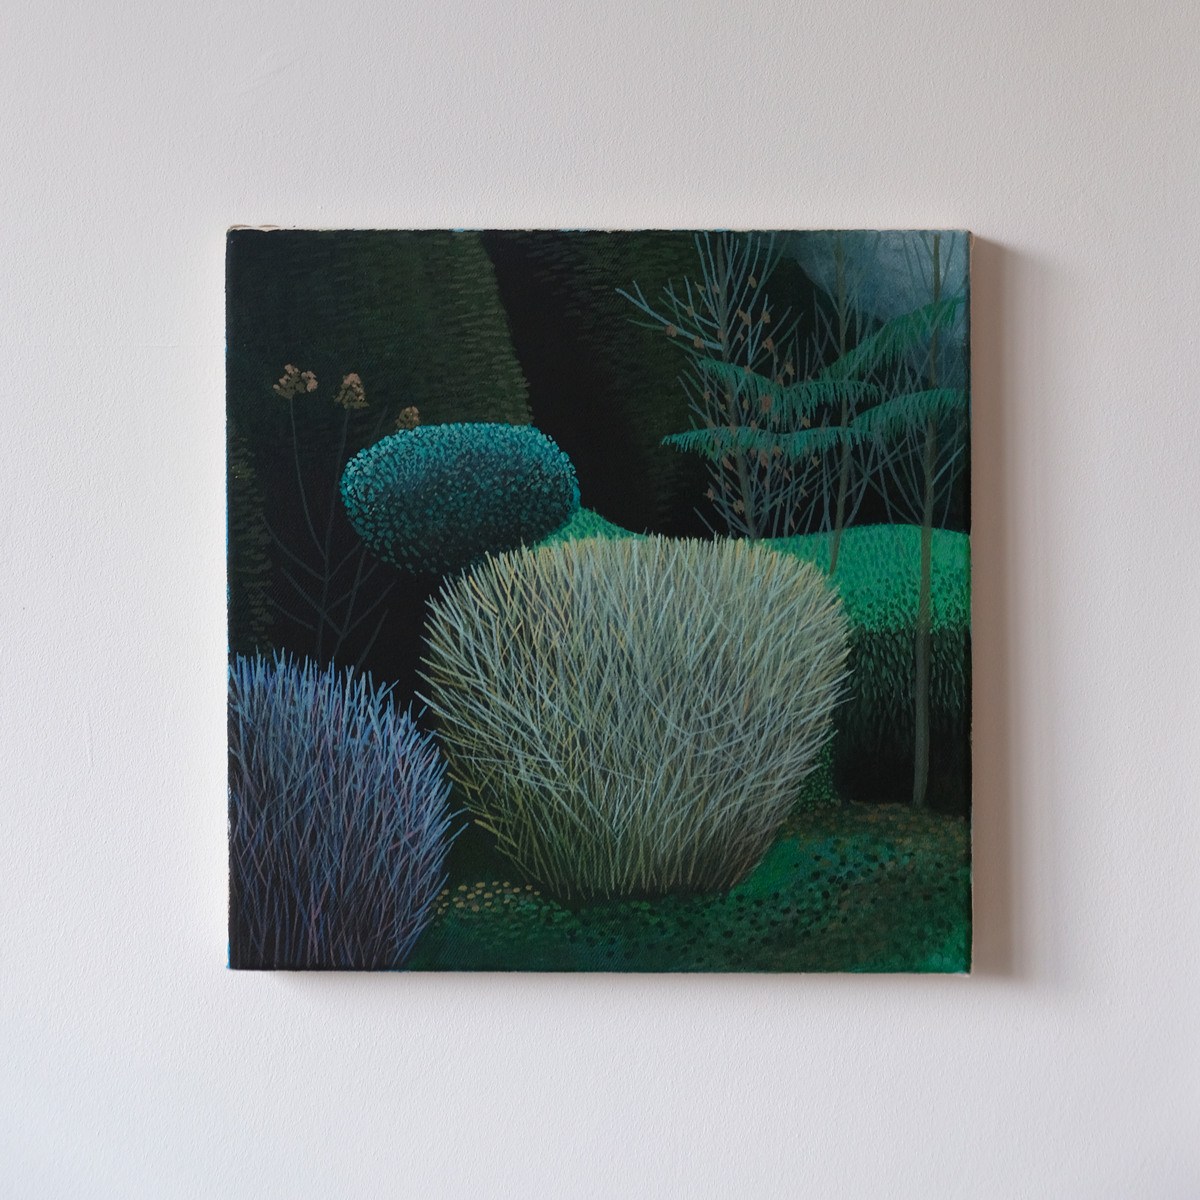 paintings of human shaped landscapes